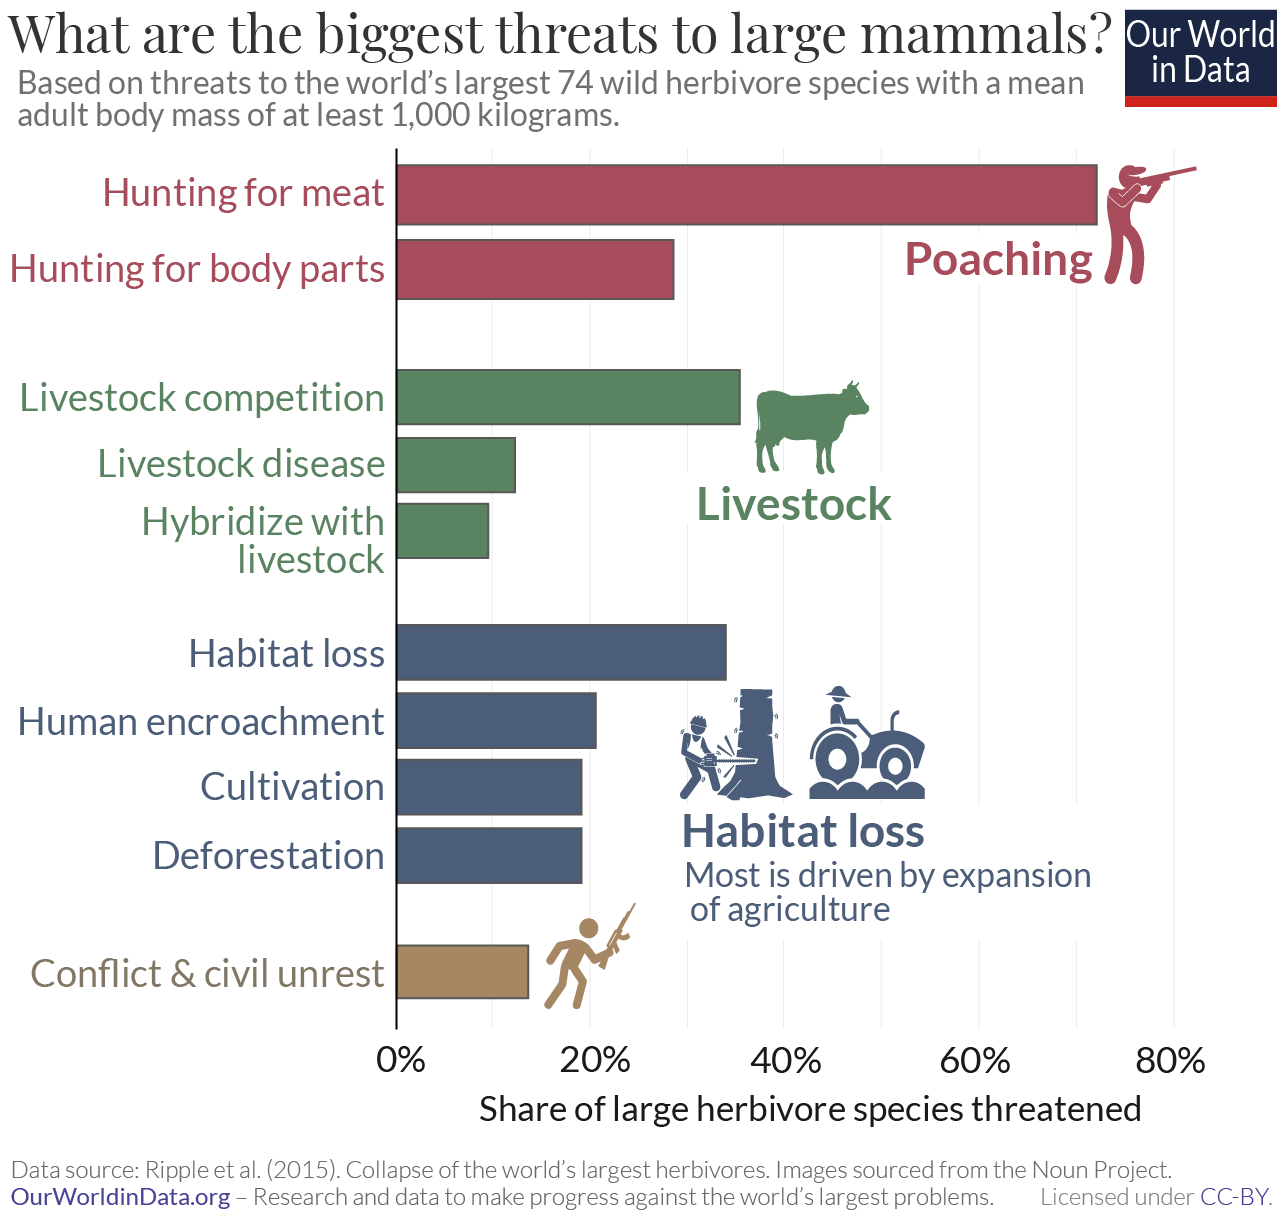 What are the largest threats to large mammals